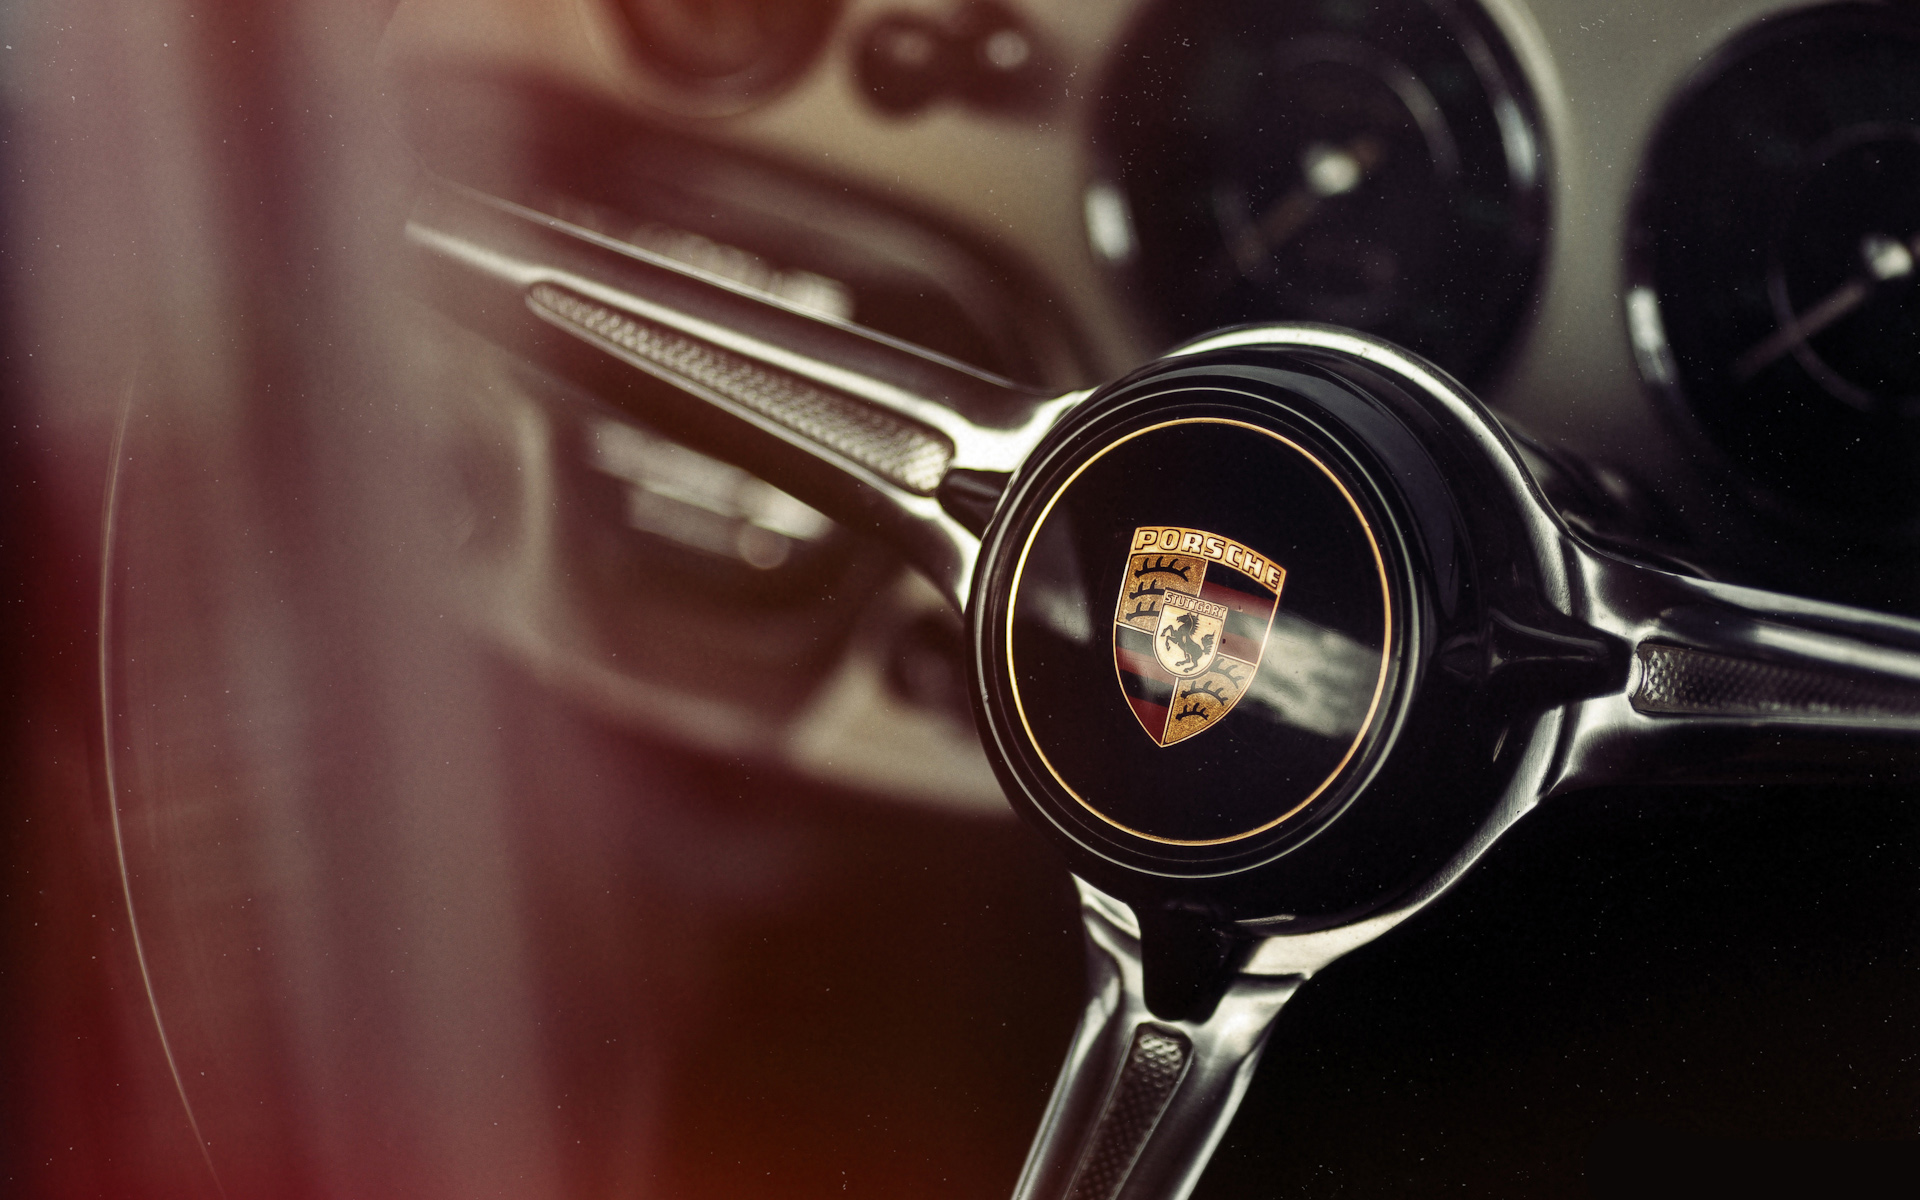 Most Expensive Watch In The World With Price >> Most Expensive Porsche in the World (Price and Image) - Alux.com